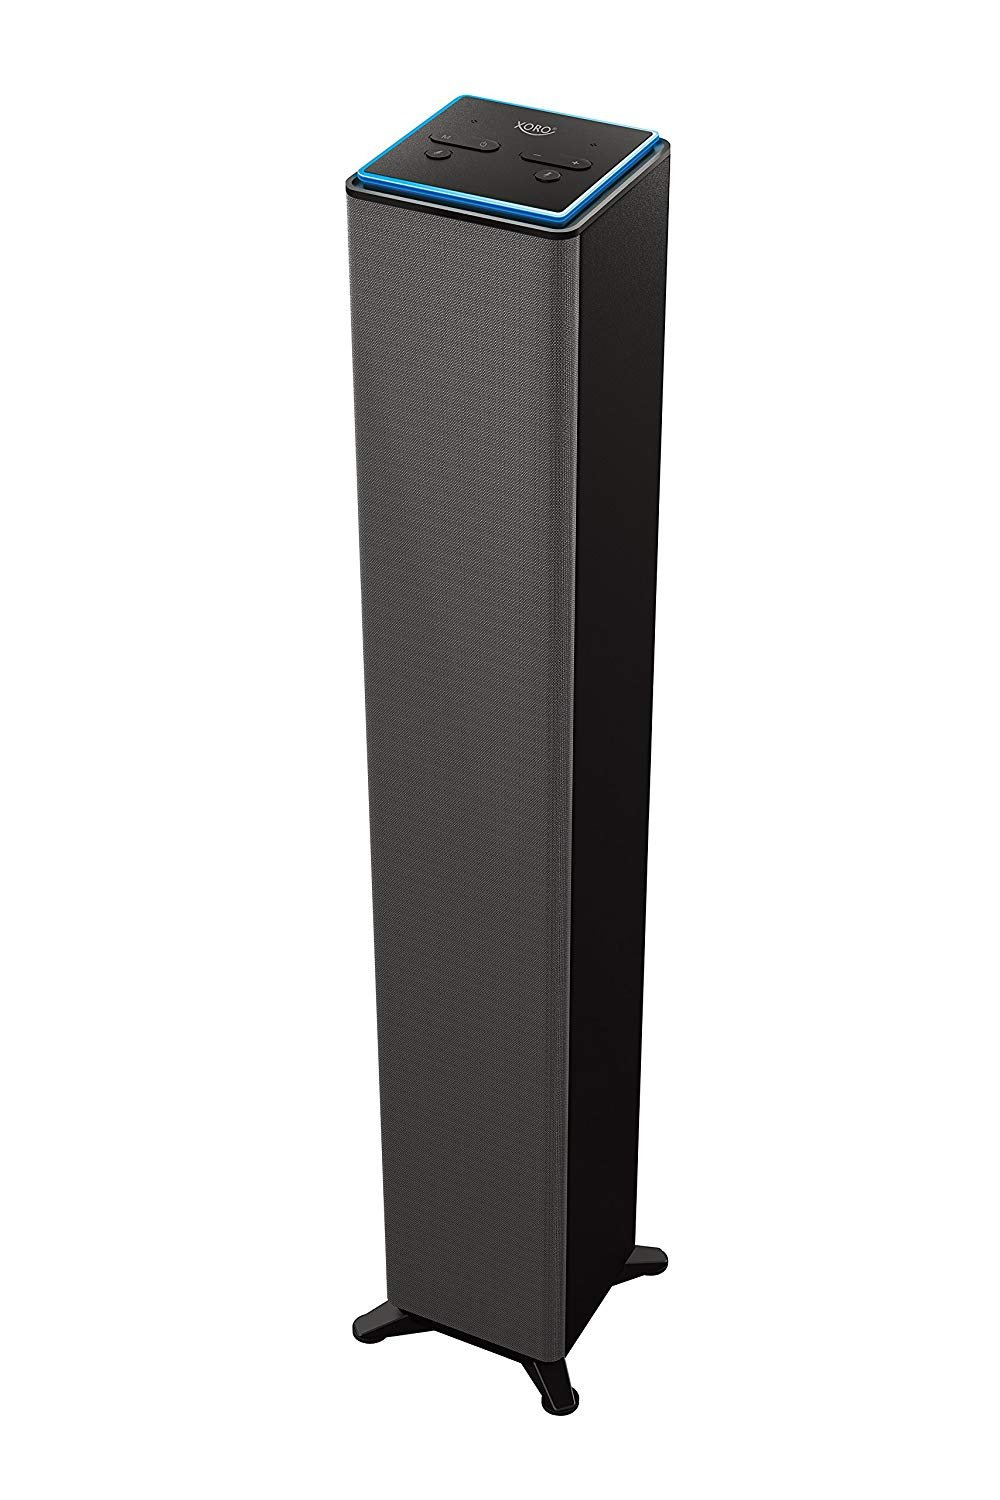 MAS Elektronik XVS 200 Barra de Sonido con Alexa Asistente (DLNA, Airplay, Music Streaming, 2 x 10 W, WiFi, BT, Linein) Negro